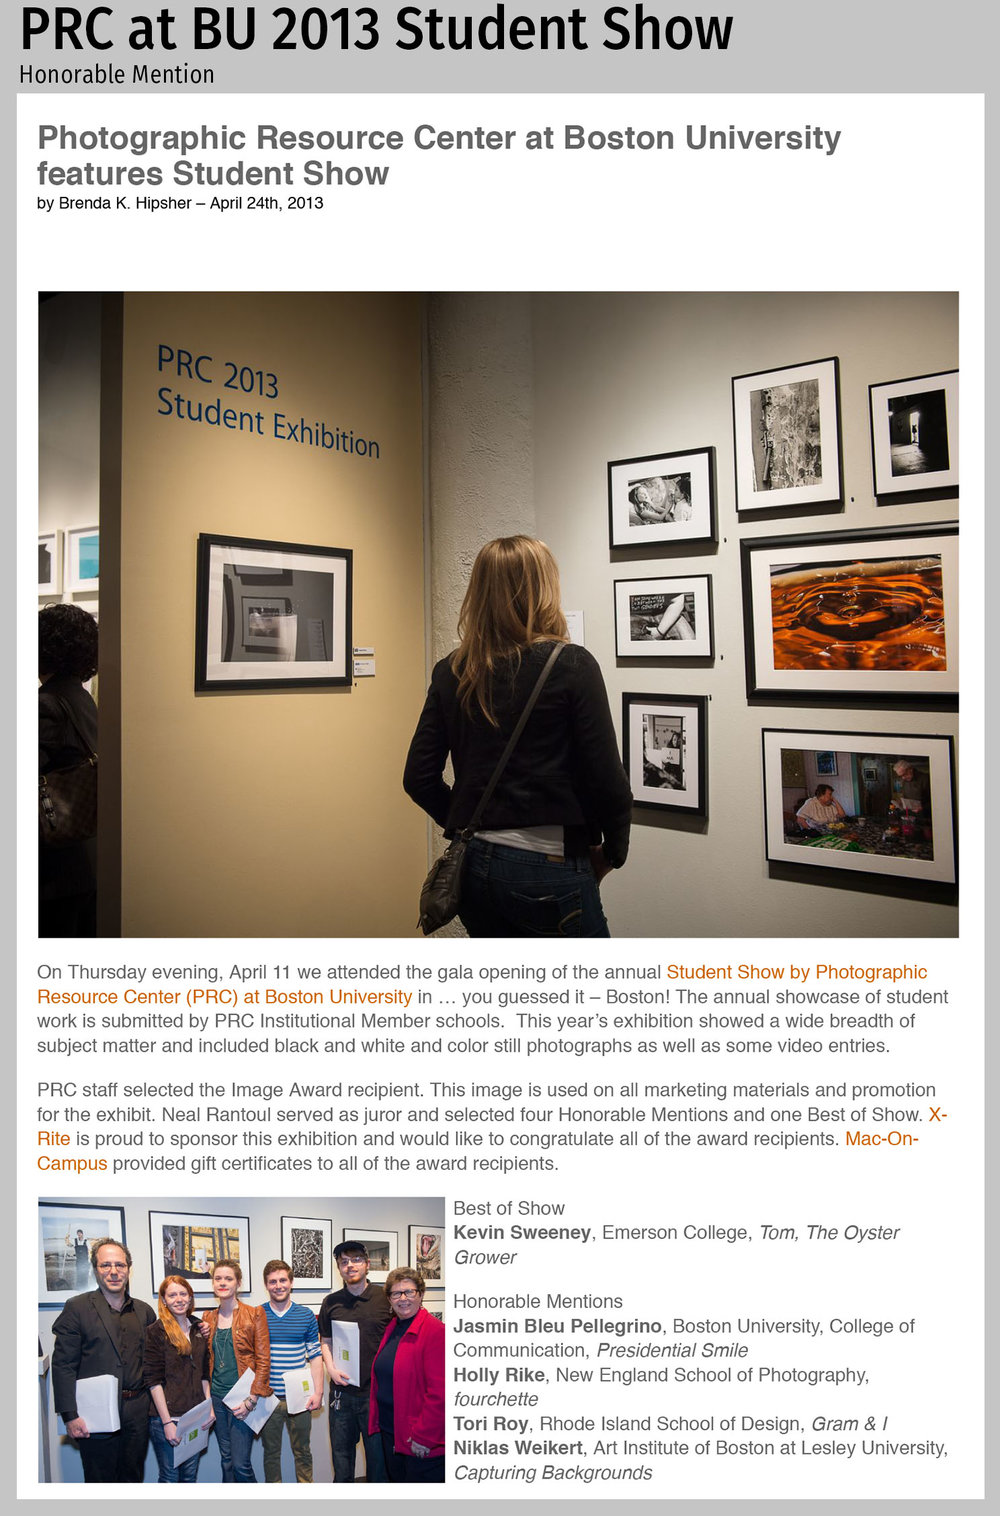 Photographic Resource Center at Boston University features Stude